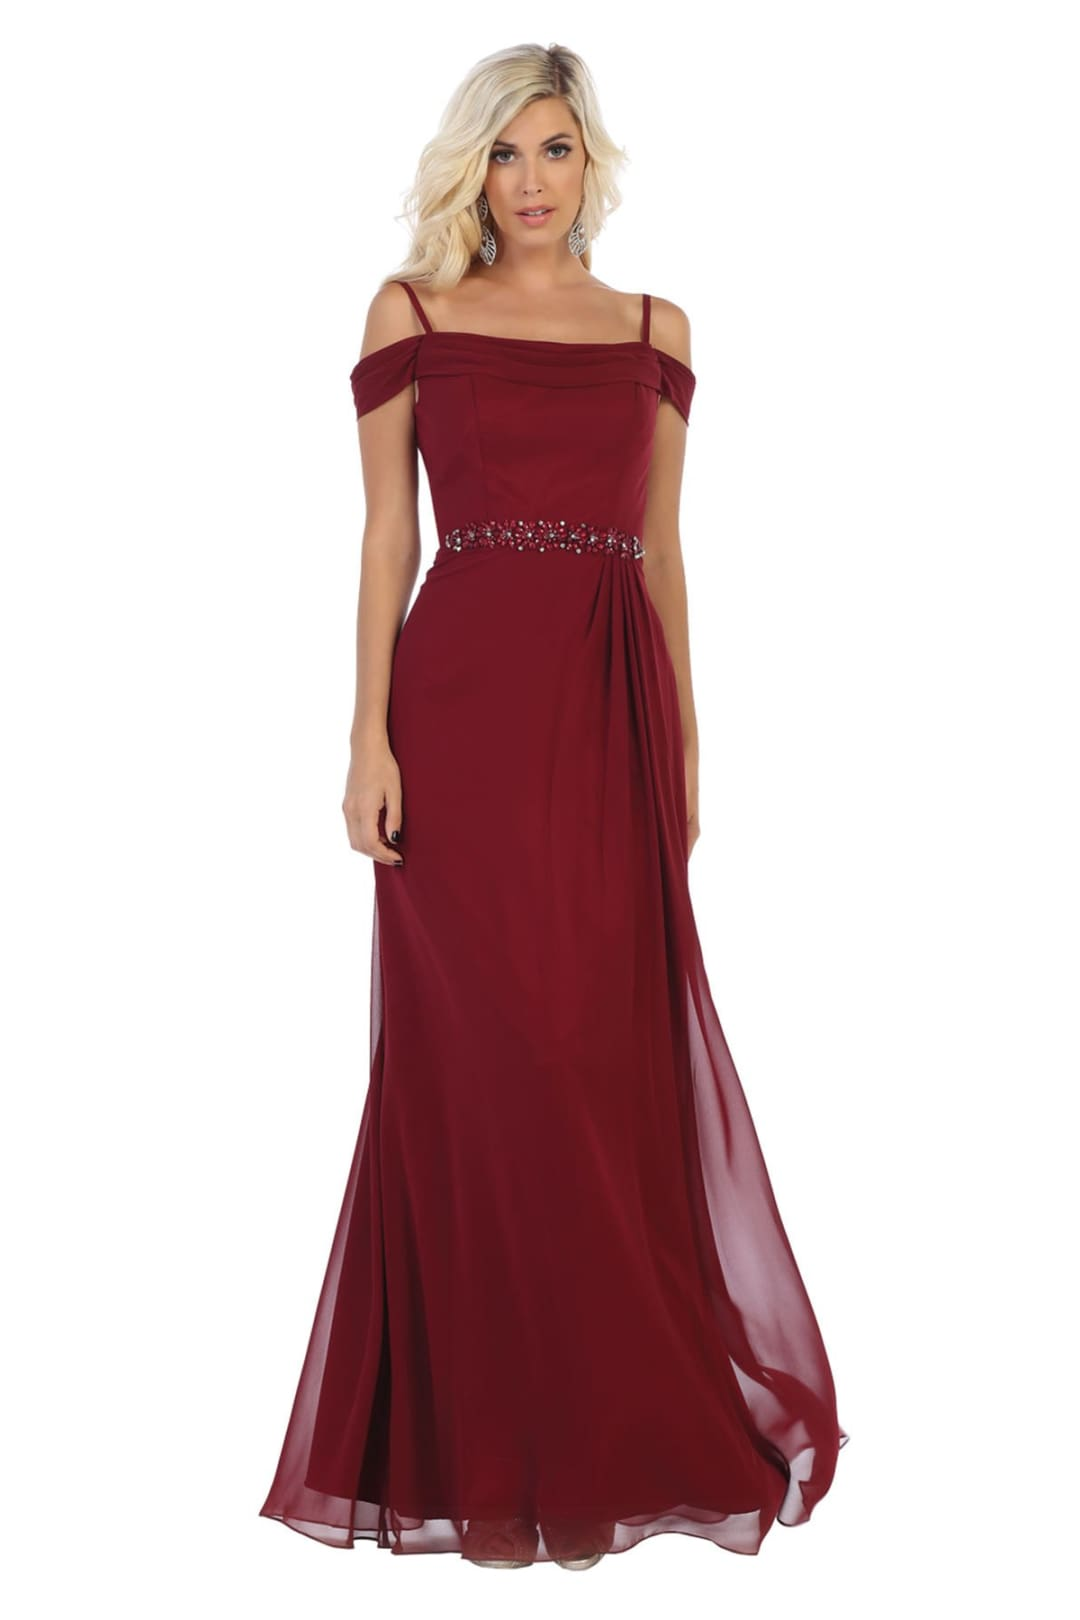 Off Shoulder Chiffon Dress - Burgundy / 6